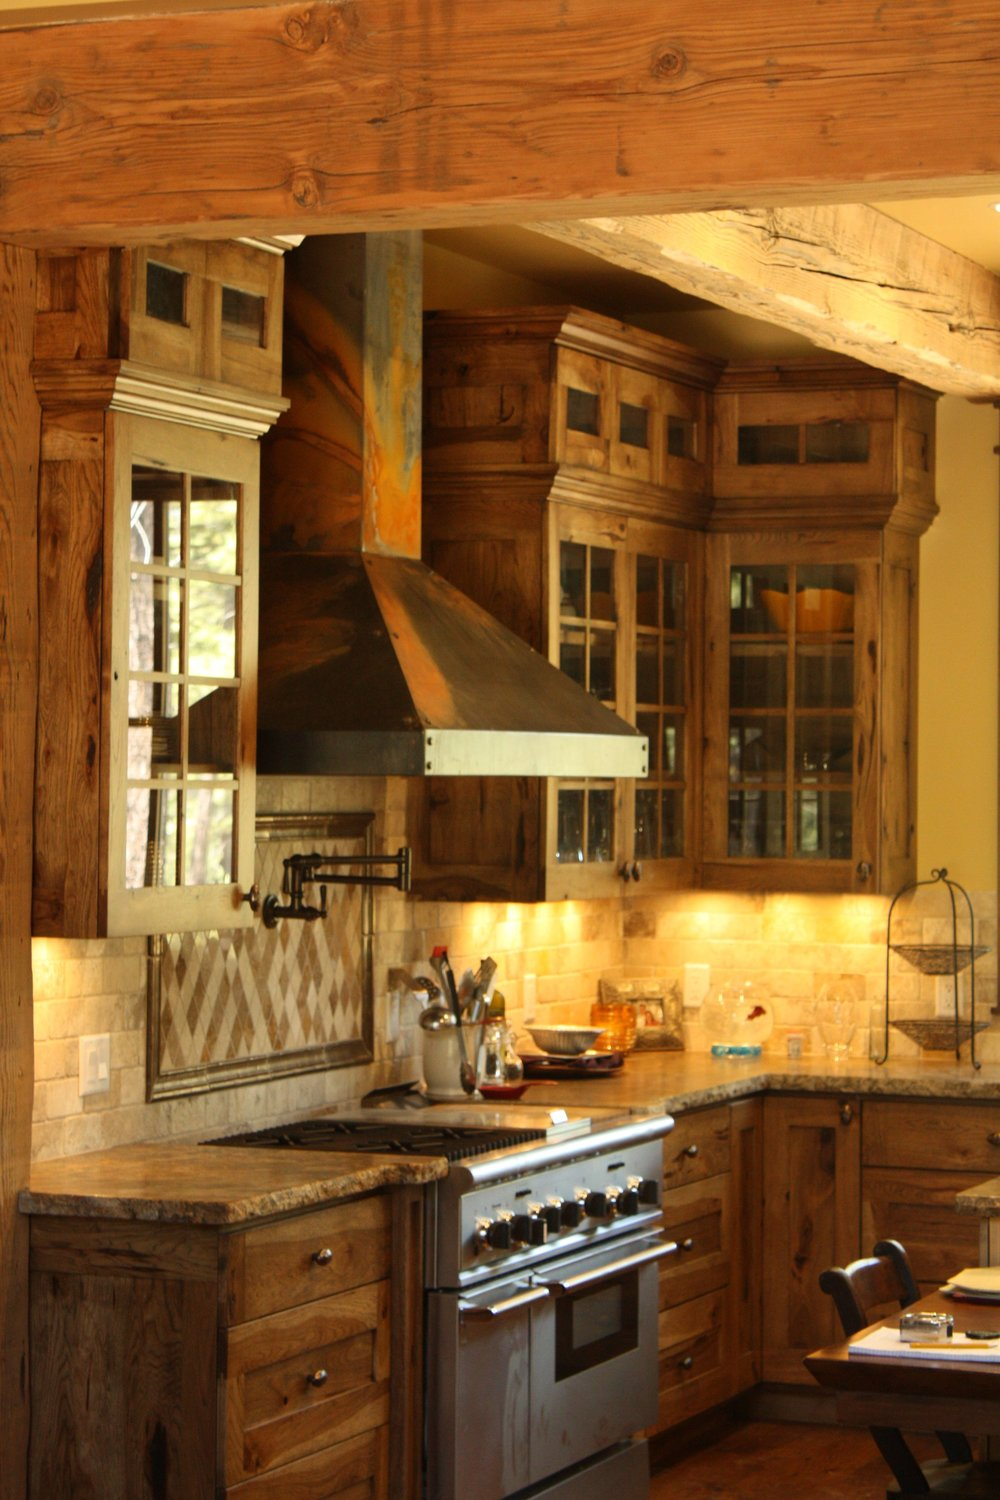 Rustic hickory kitchen cabinets we built in 2010.